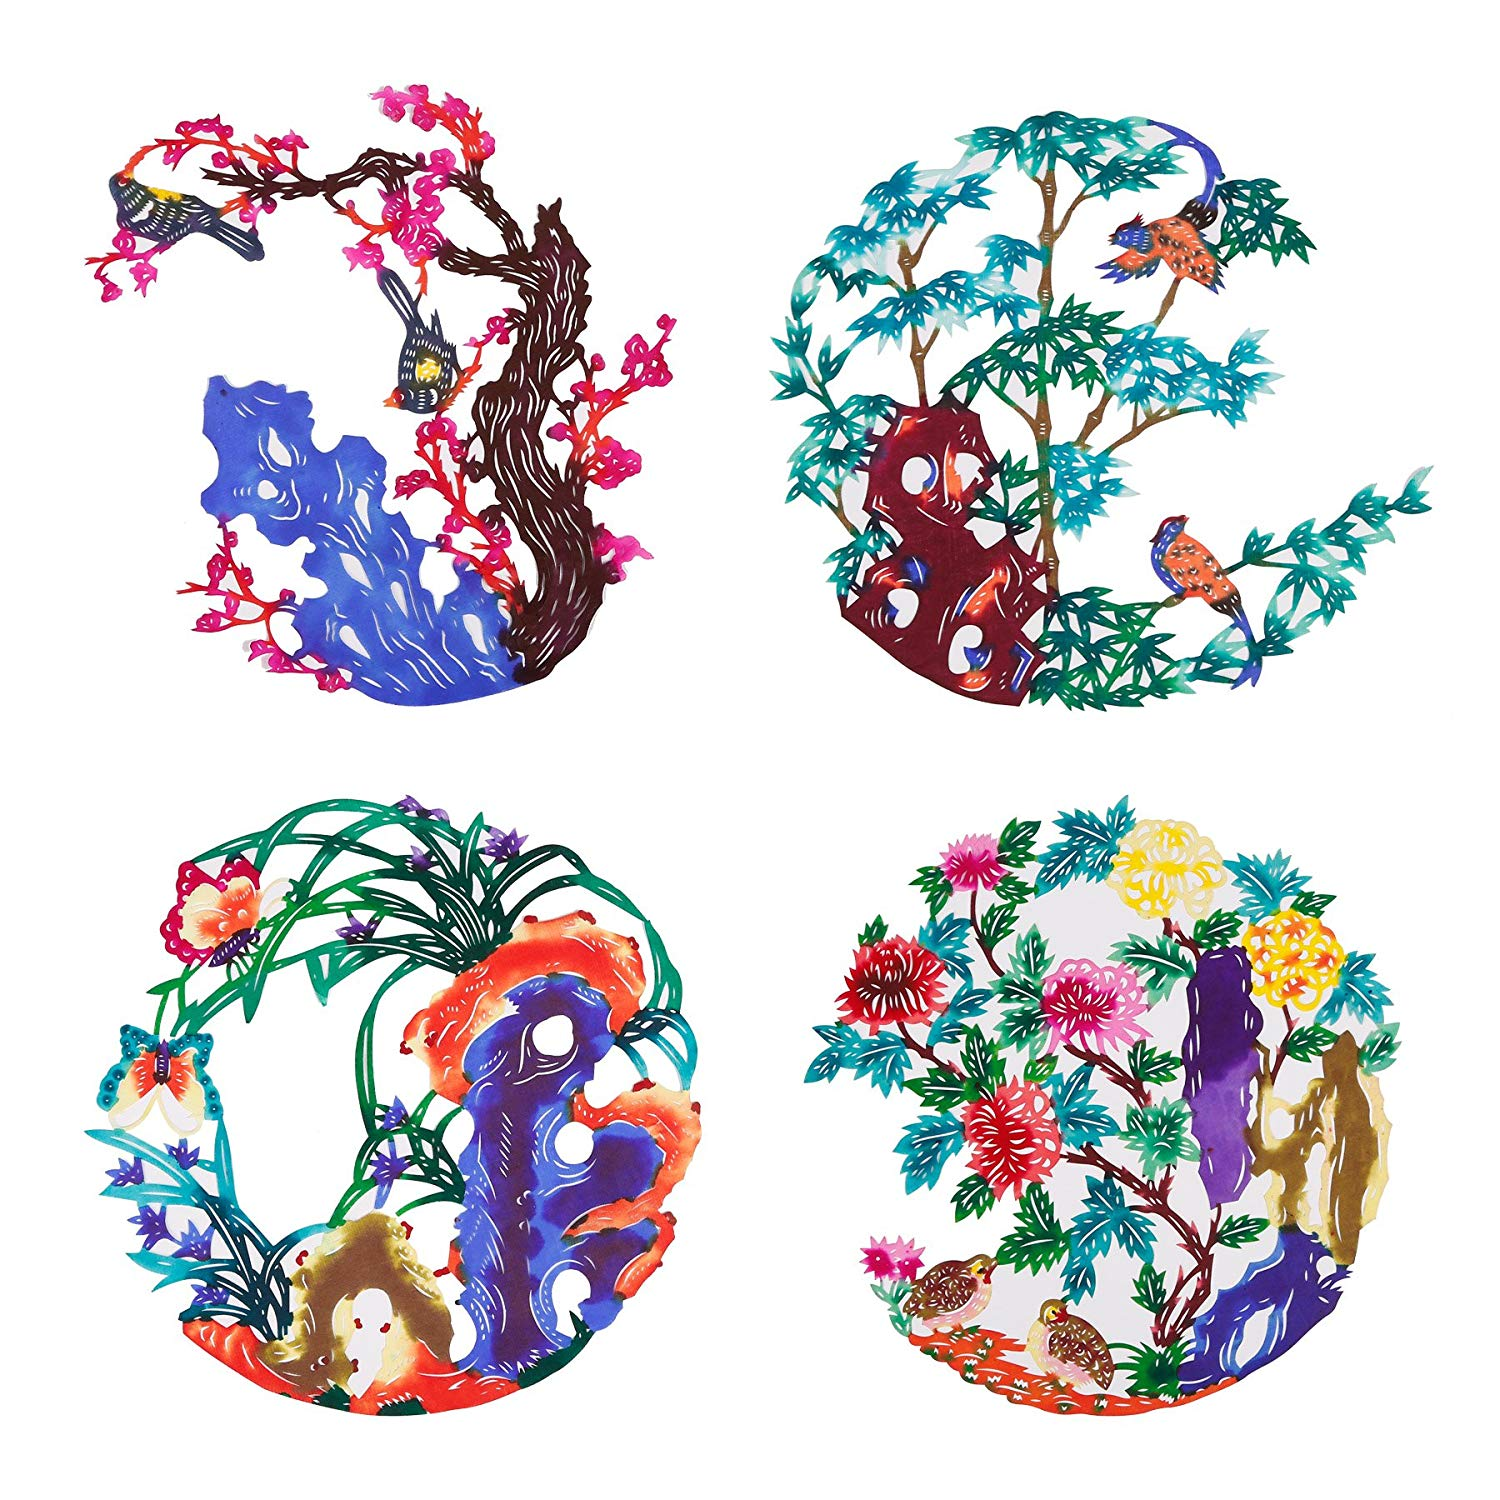 Shayier China Intangible Cultural Heritage - Chinese Color Handmade Paper-cut (Plum & orchid & bamboo & chrysanthemum)